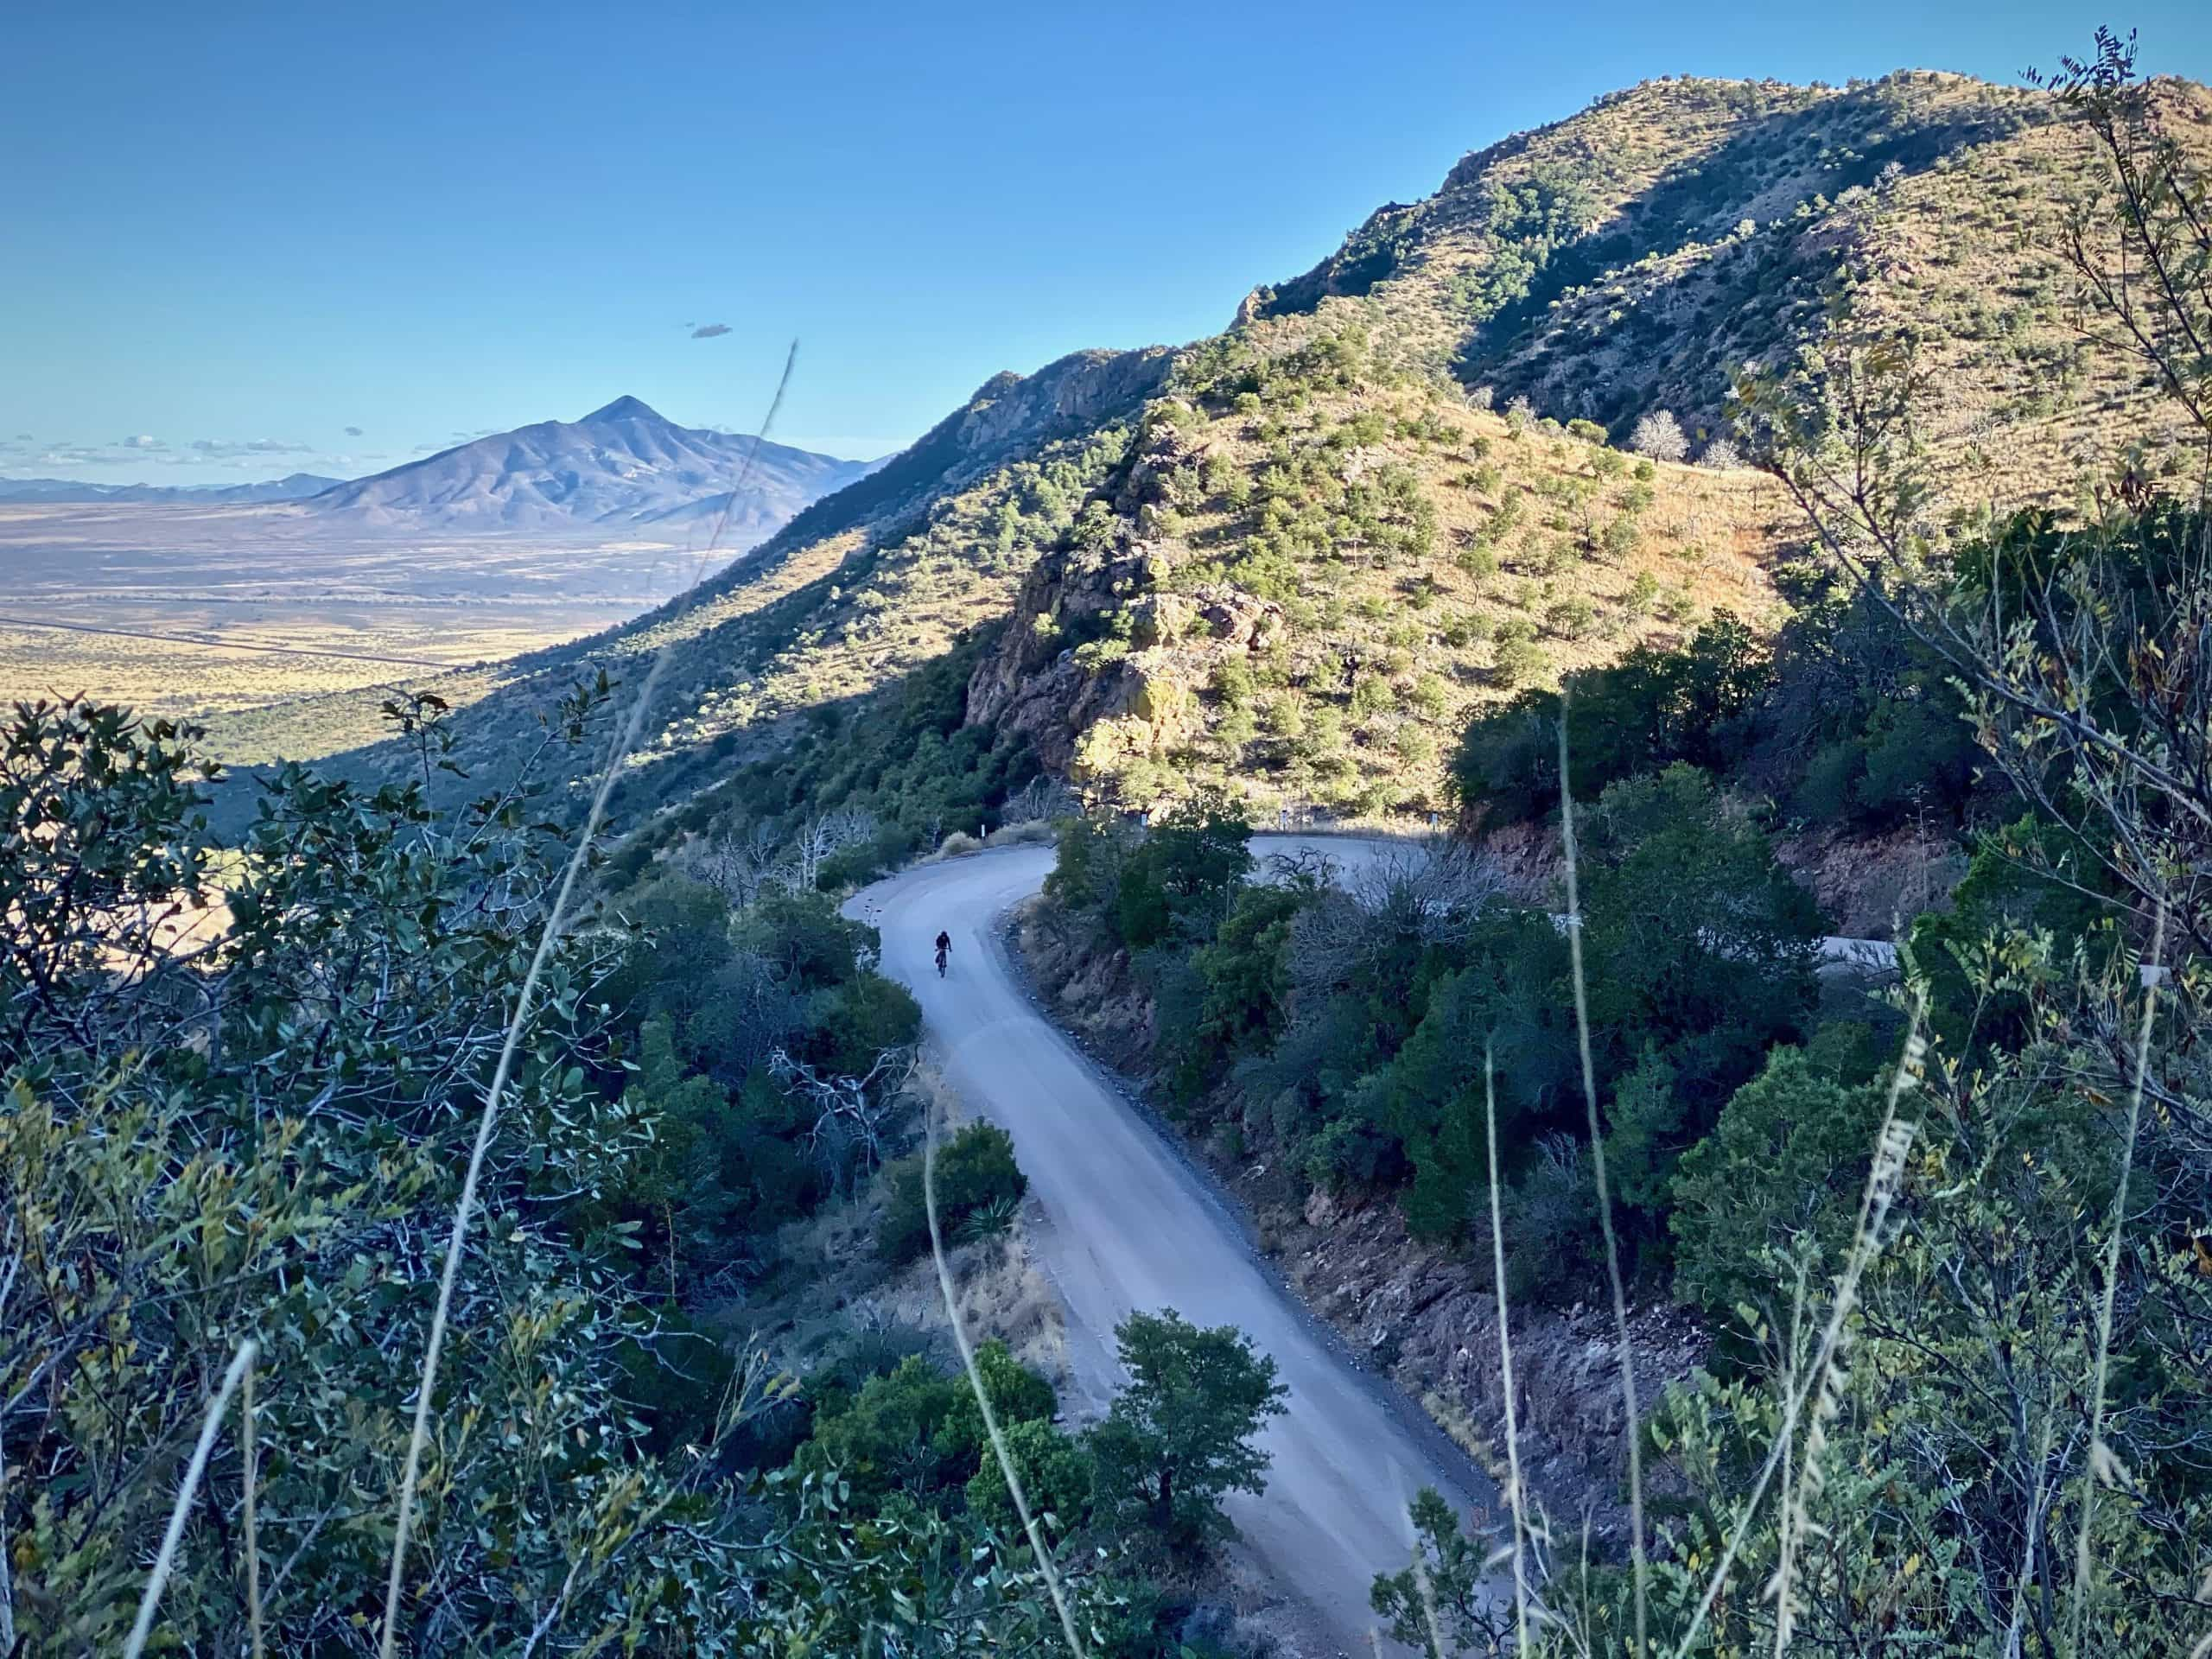 The gravel road descent on the east side of Montezuma Pass in the Coronado National Memorial.